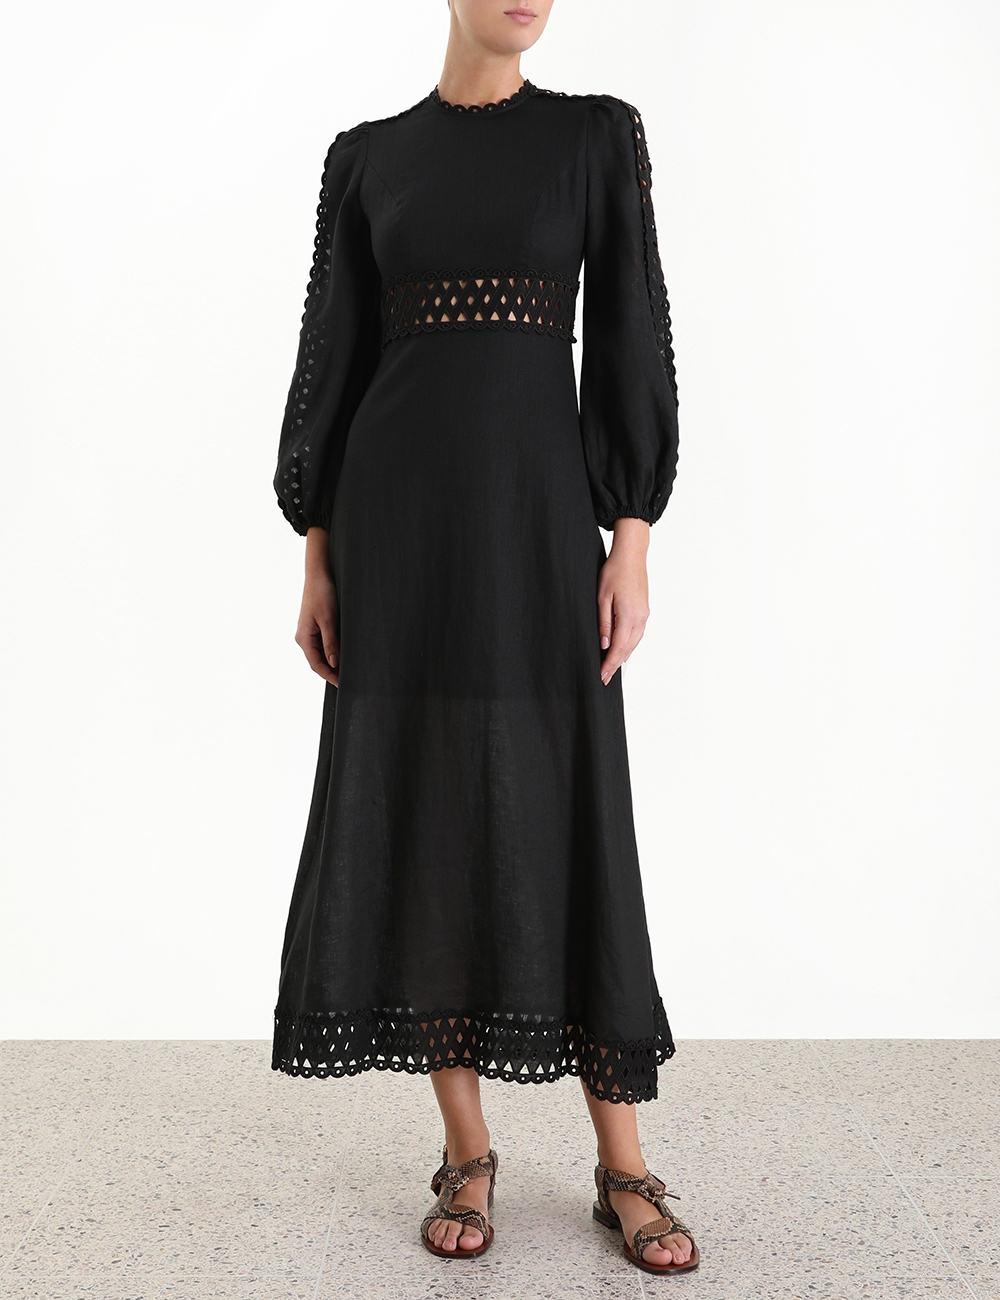 Verity Woven Insert Dress